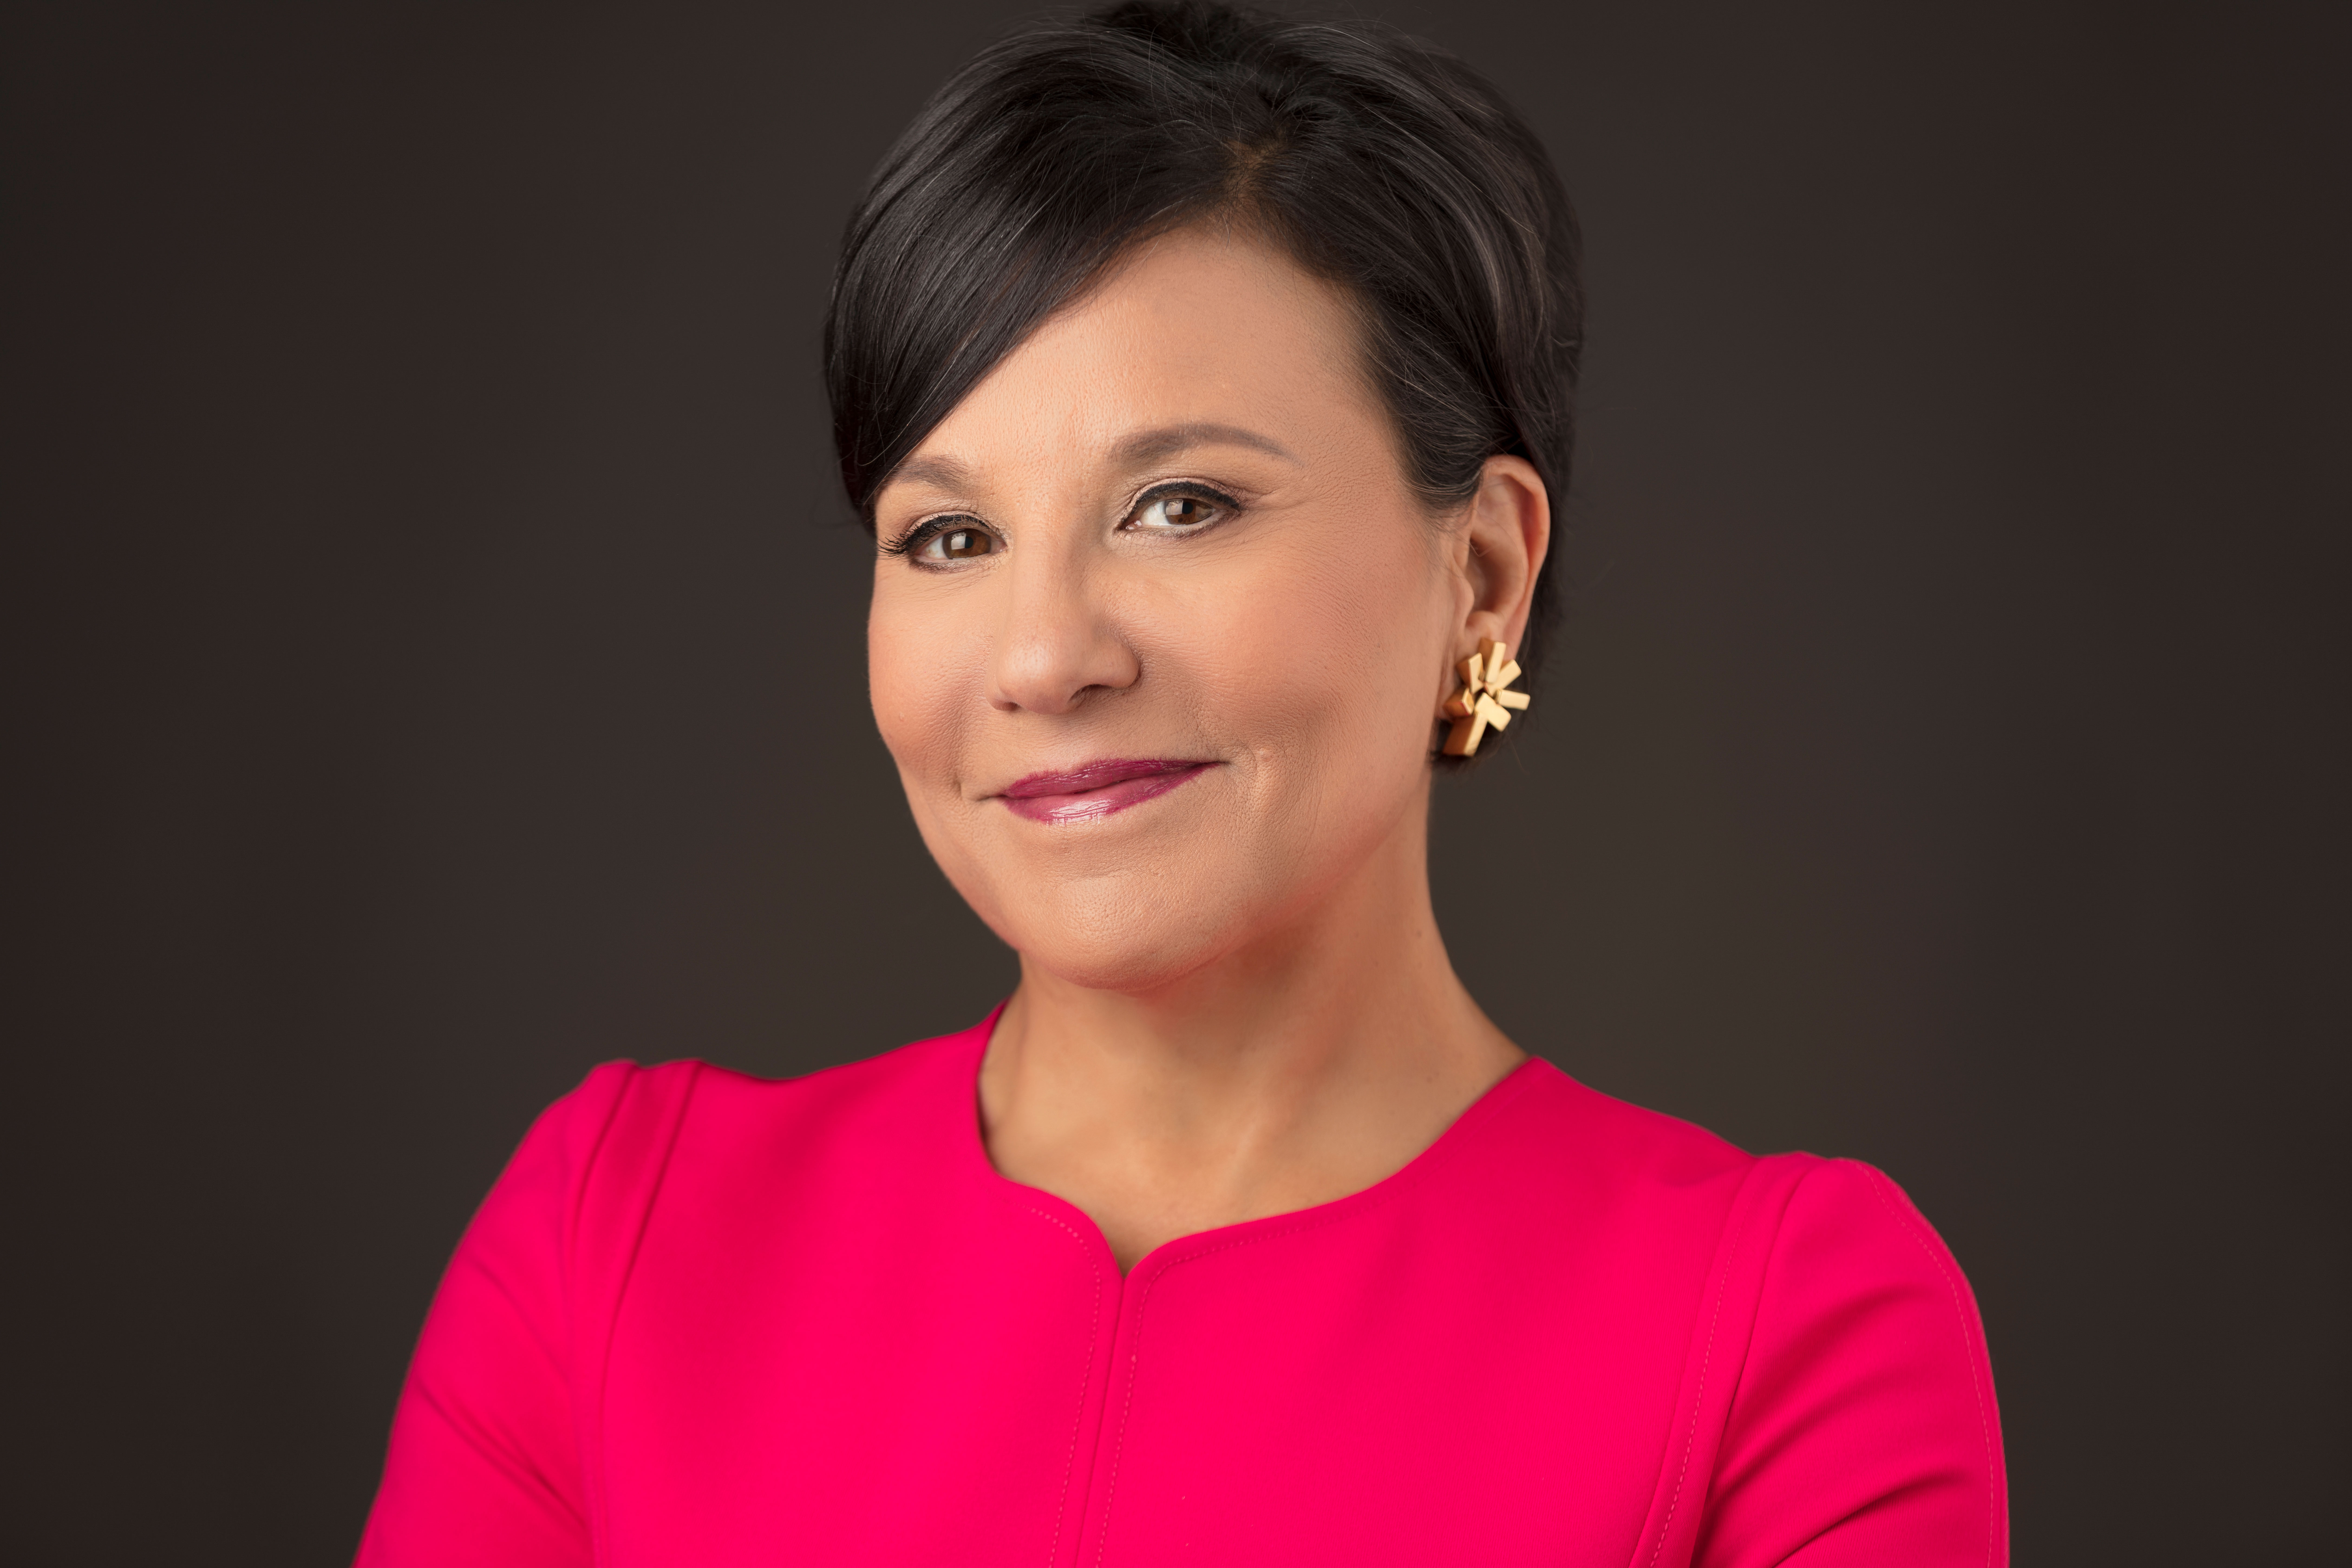 38th Secretary Of Commerce Penny Pritzker To Keynote At